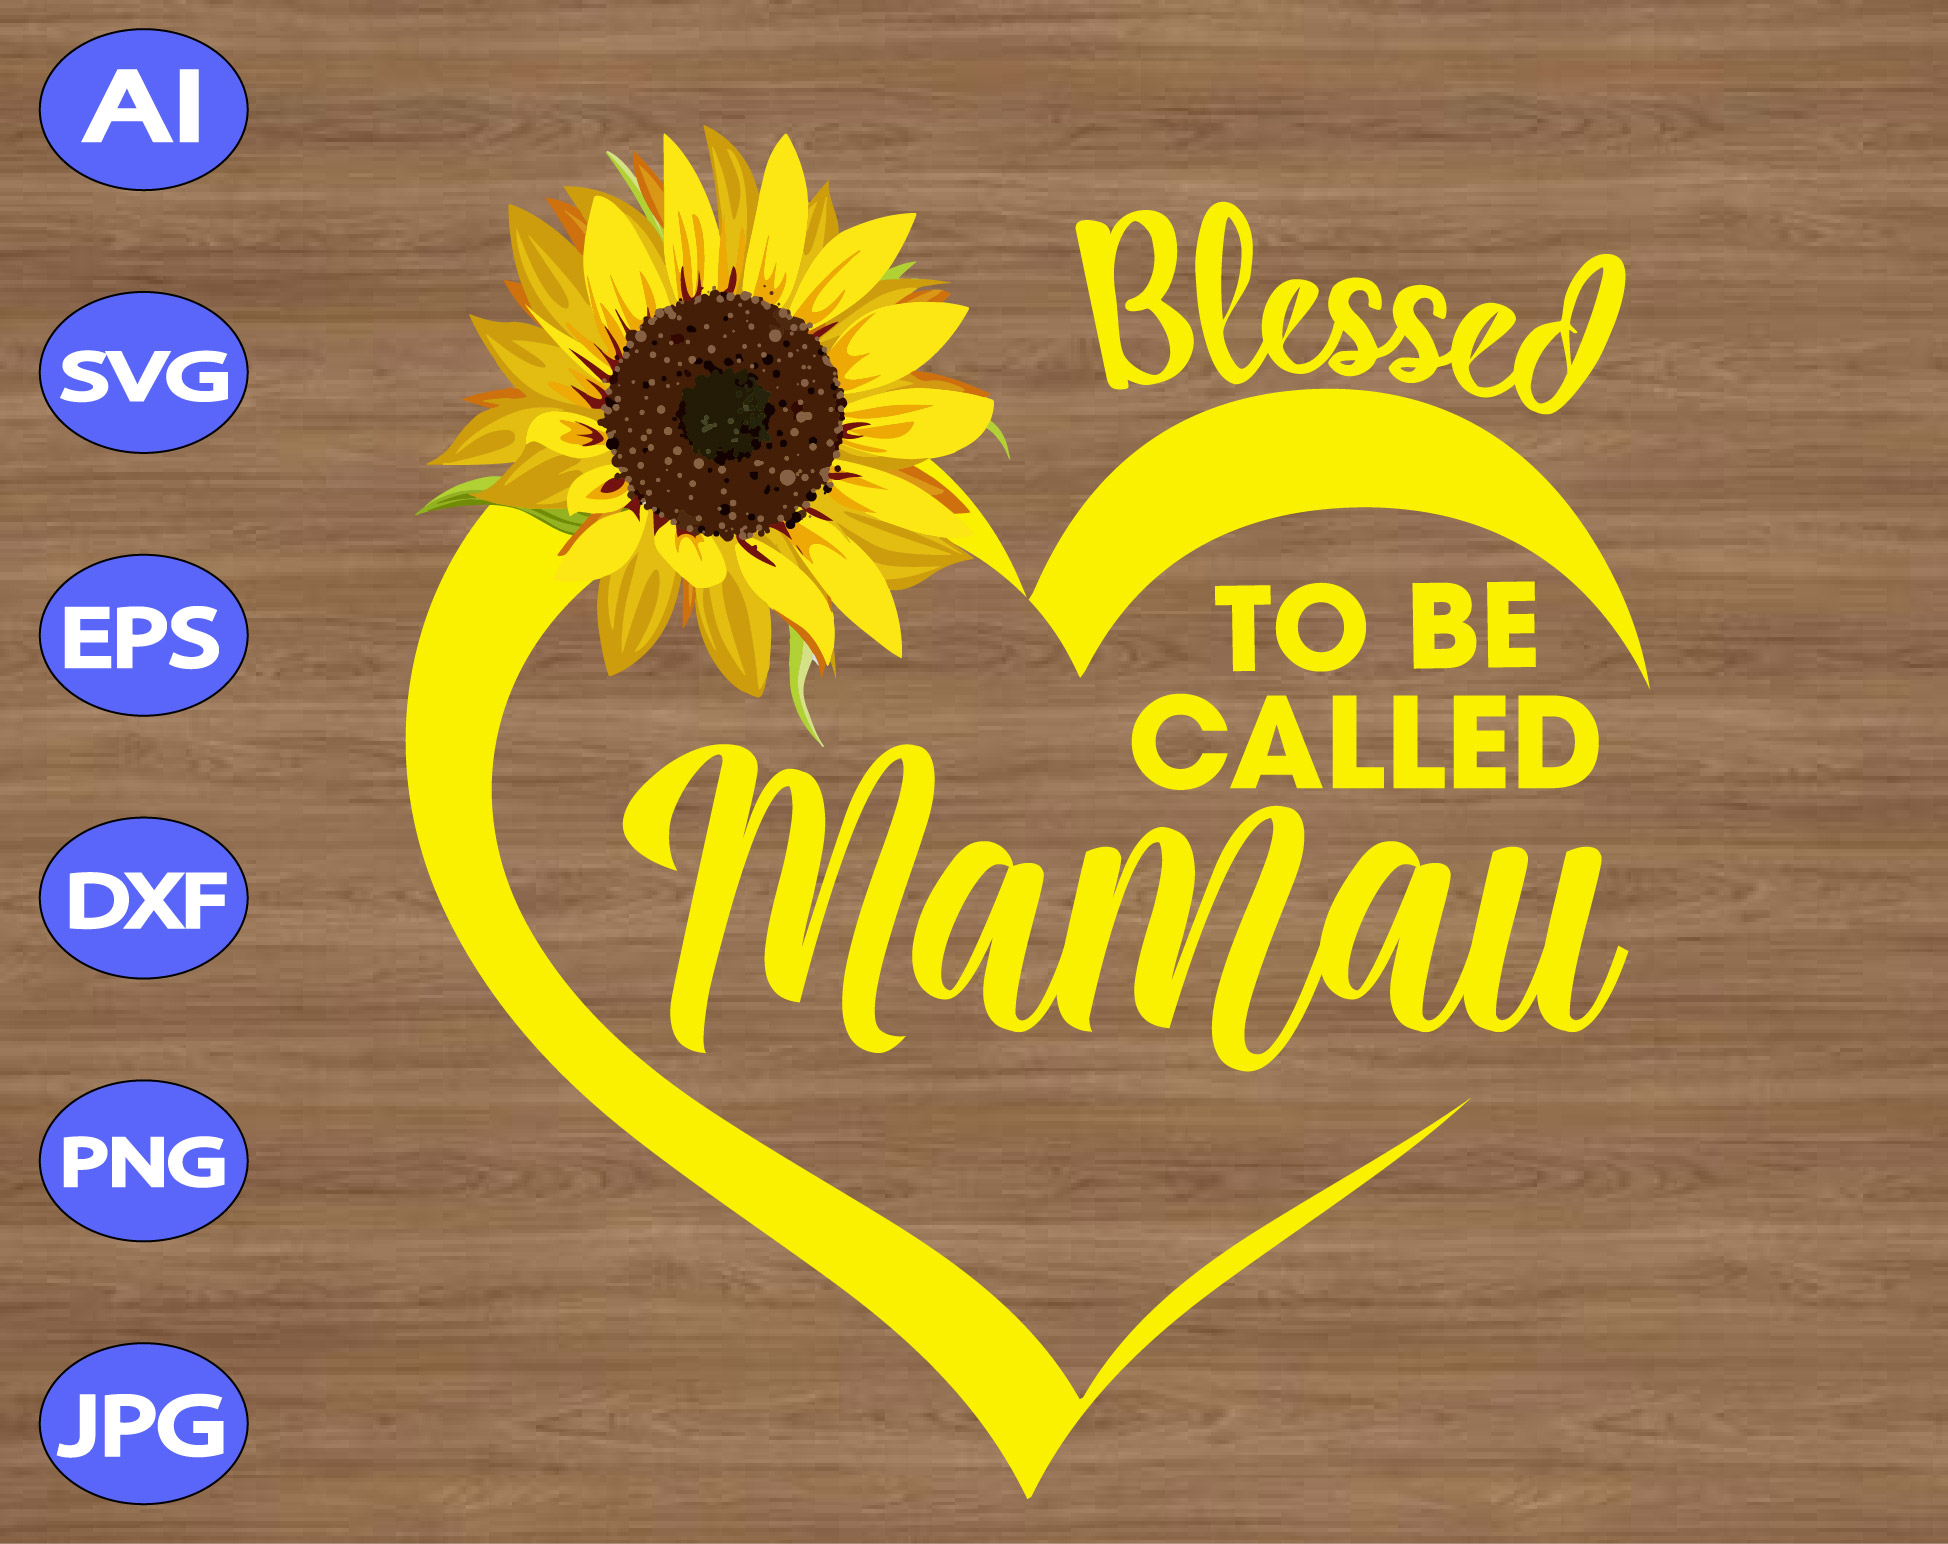 Blessed To Be Called Mamaw Svg Dxf Eps Png Digital Download Designbtf Com